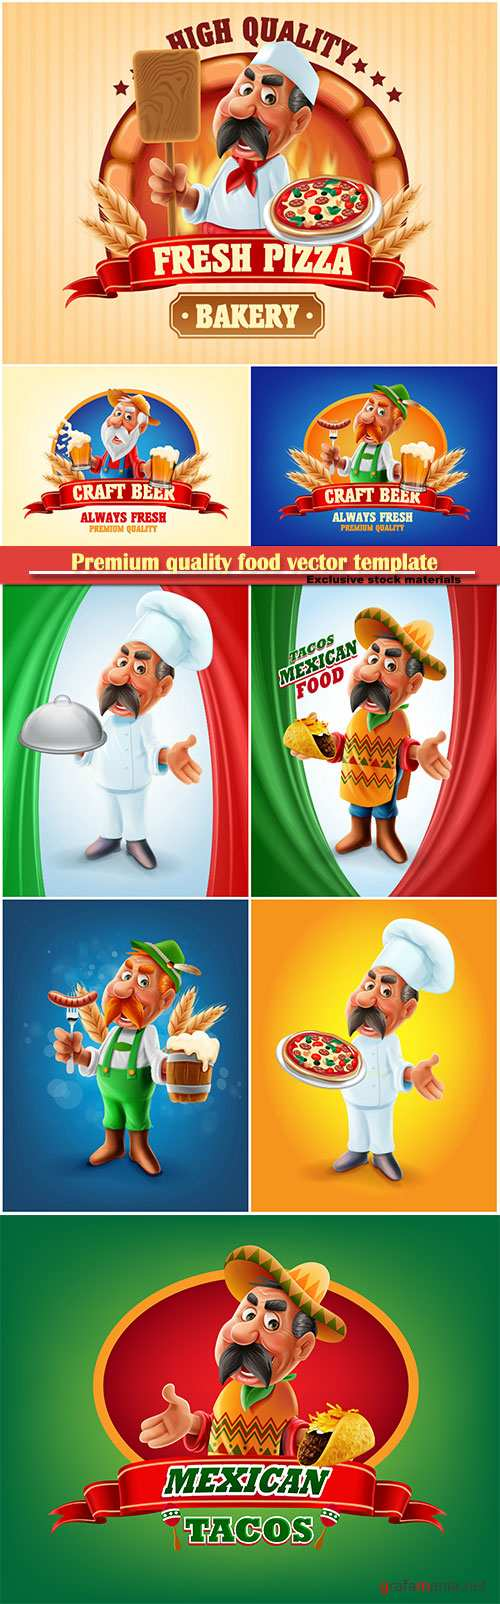 Premium quality food vector template, pizza, beer, Mexican food